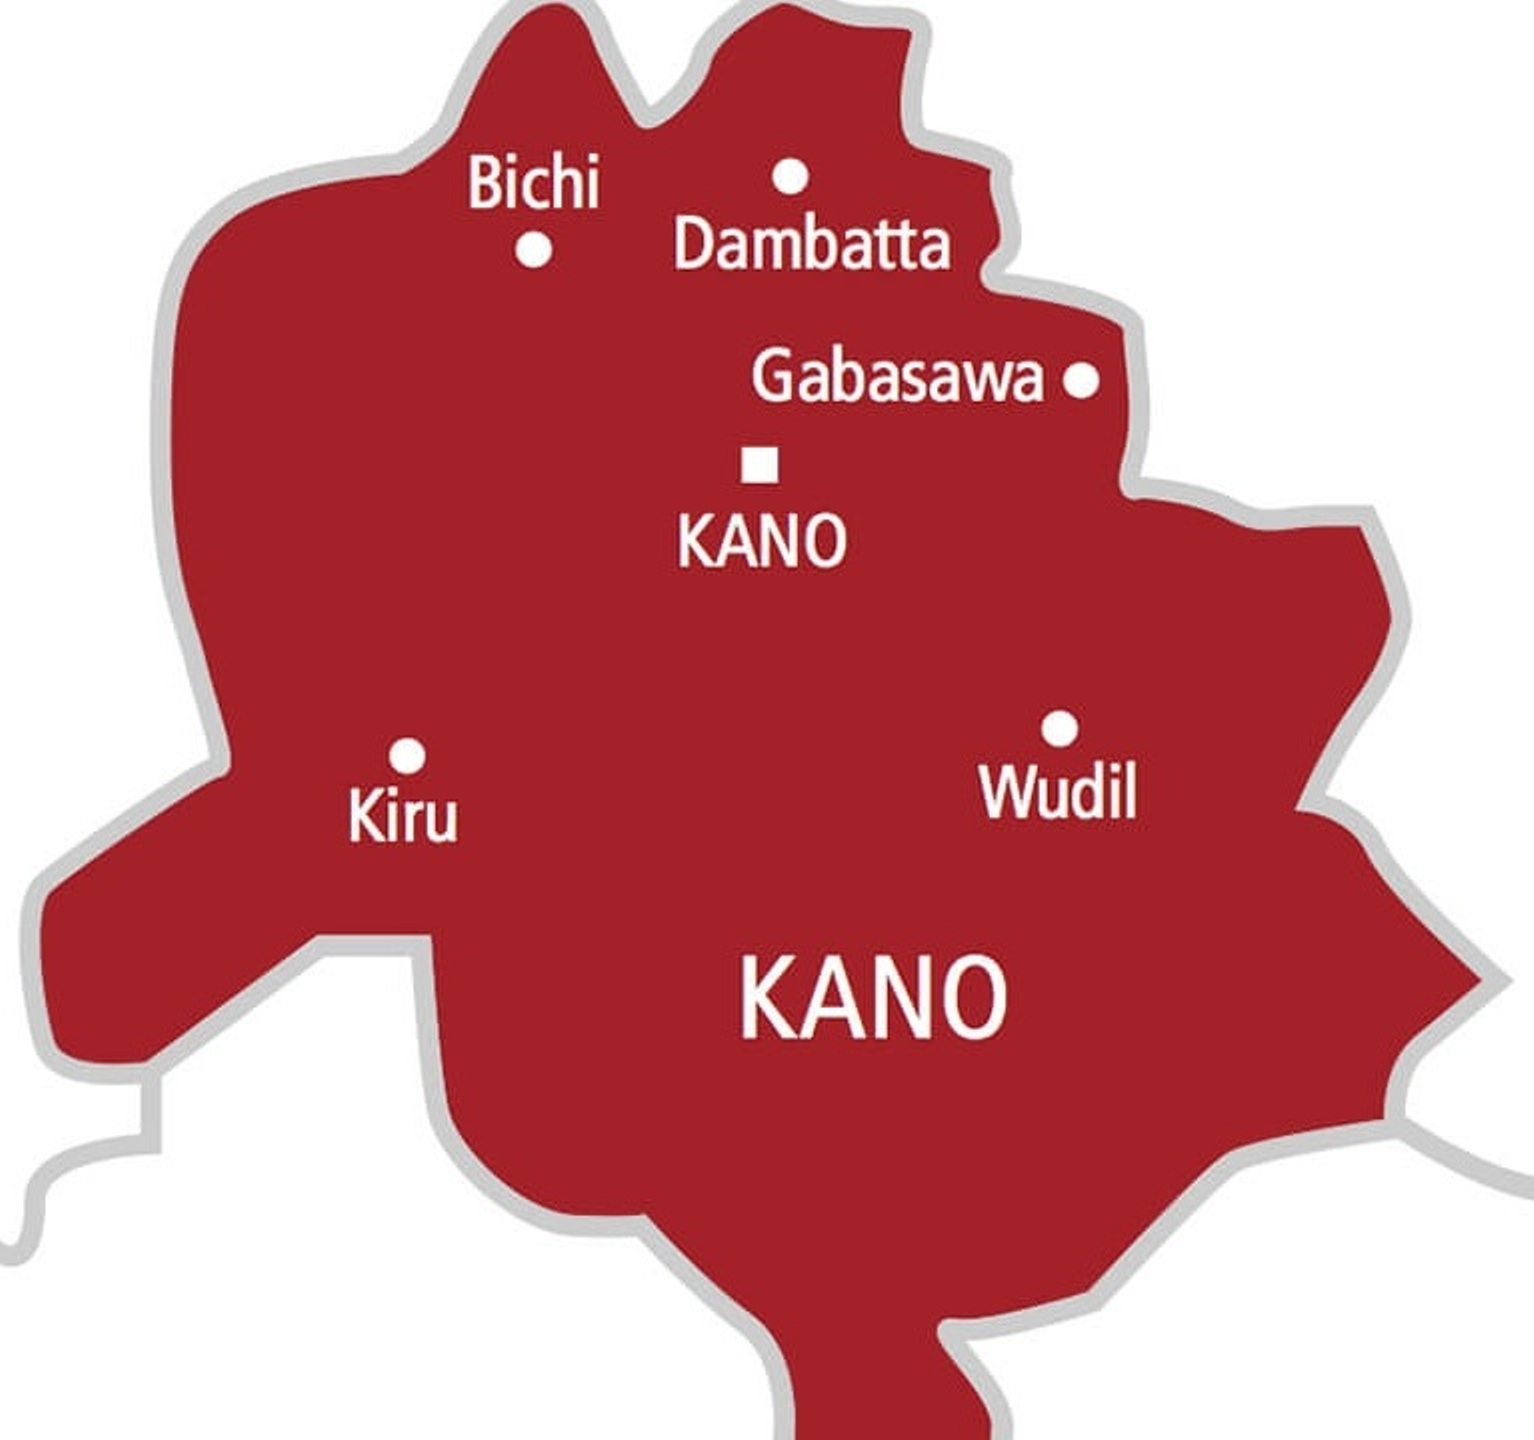 Kano Hisbah arrests 2 men suspected of sending pornographic materials to married woman